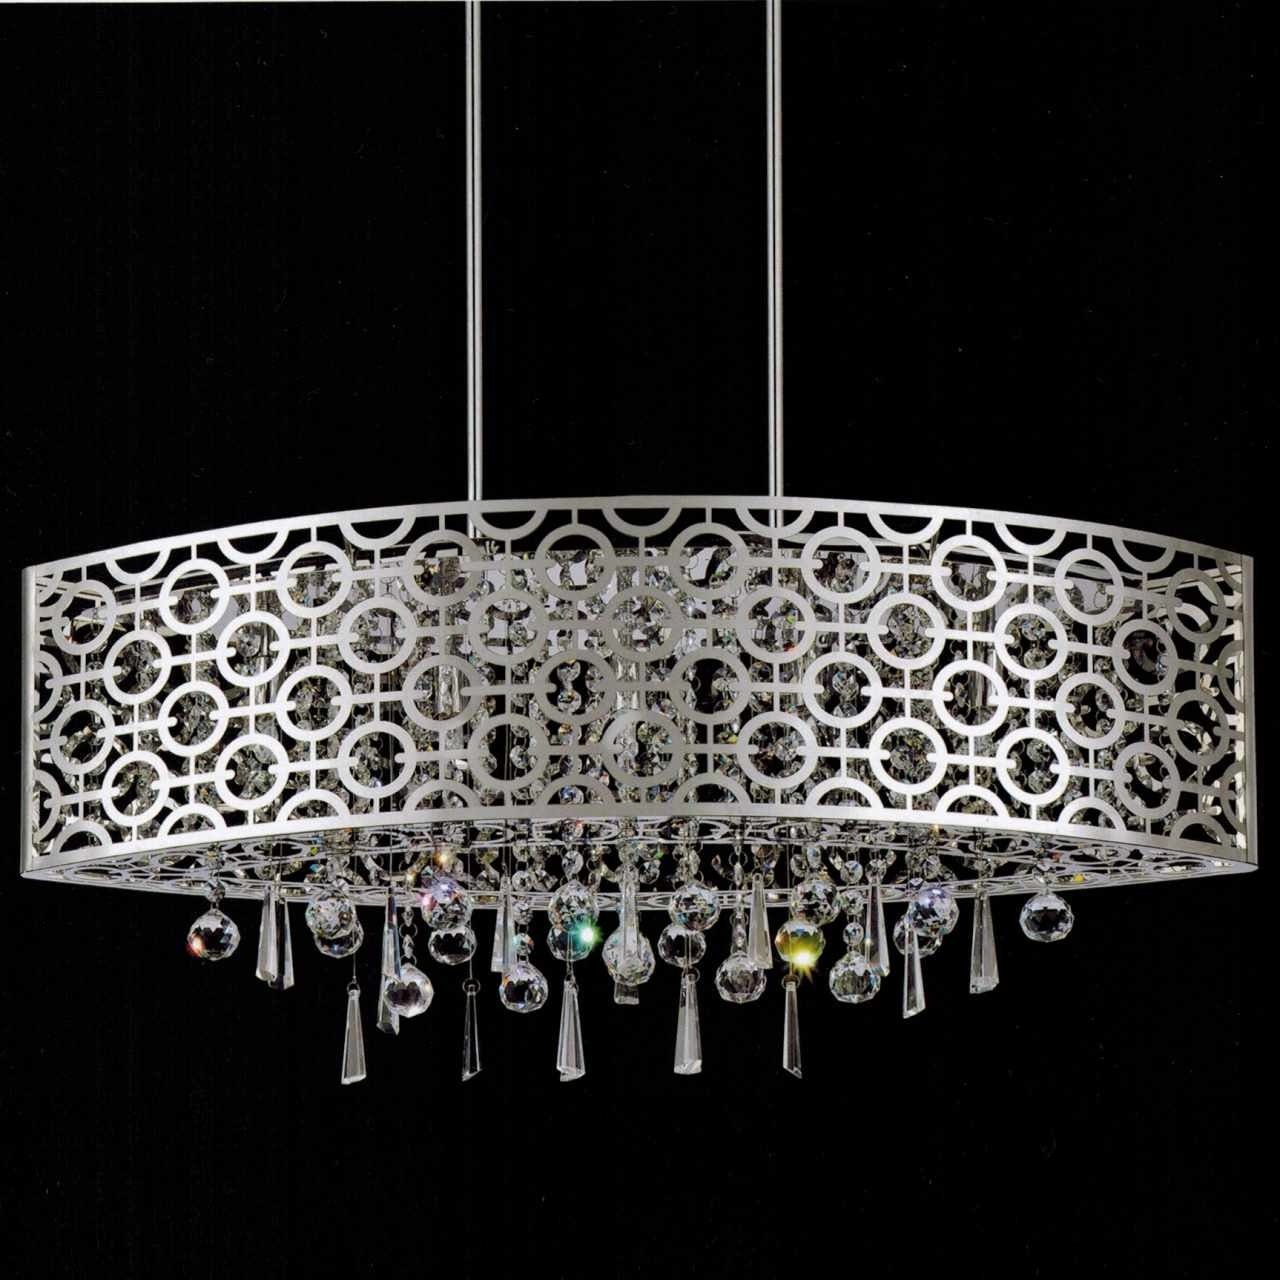 Long Hanging Chandeliers Throughout Favorite Brizzo Lighting Stores (View 8 of 15)